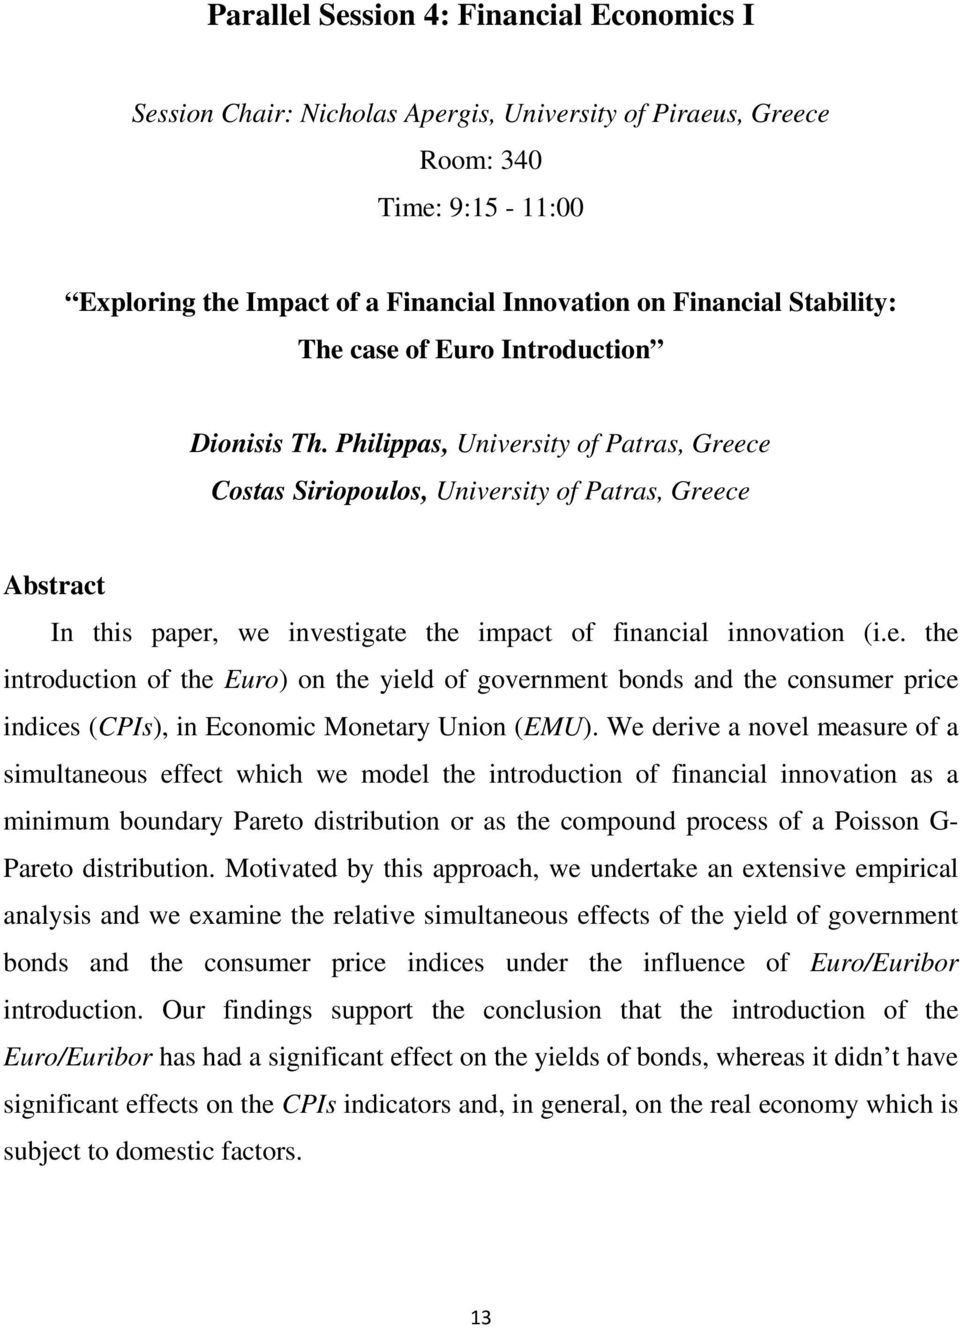 Philippas, University of Patras, Greece Costas Siriopoulos, University of Patras, Greece In this paper, we investigate the impact of financial innovation (i.e. the introduction of the Euro) on the yield of government bonds and the consumer price indices (CPIs), in Economic Monetary Union (EMU).